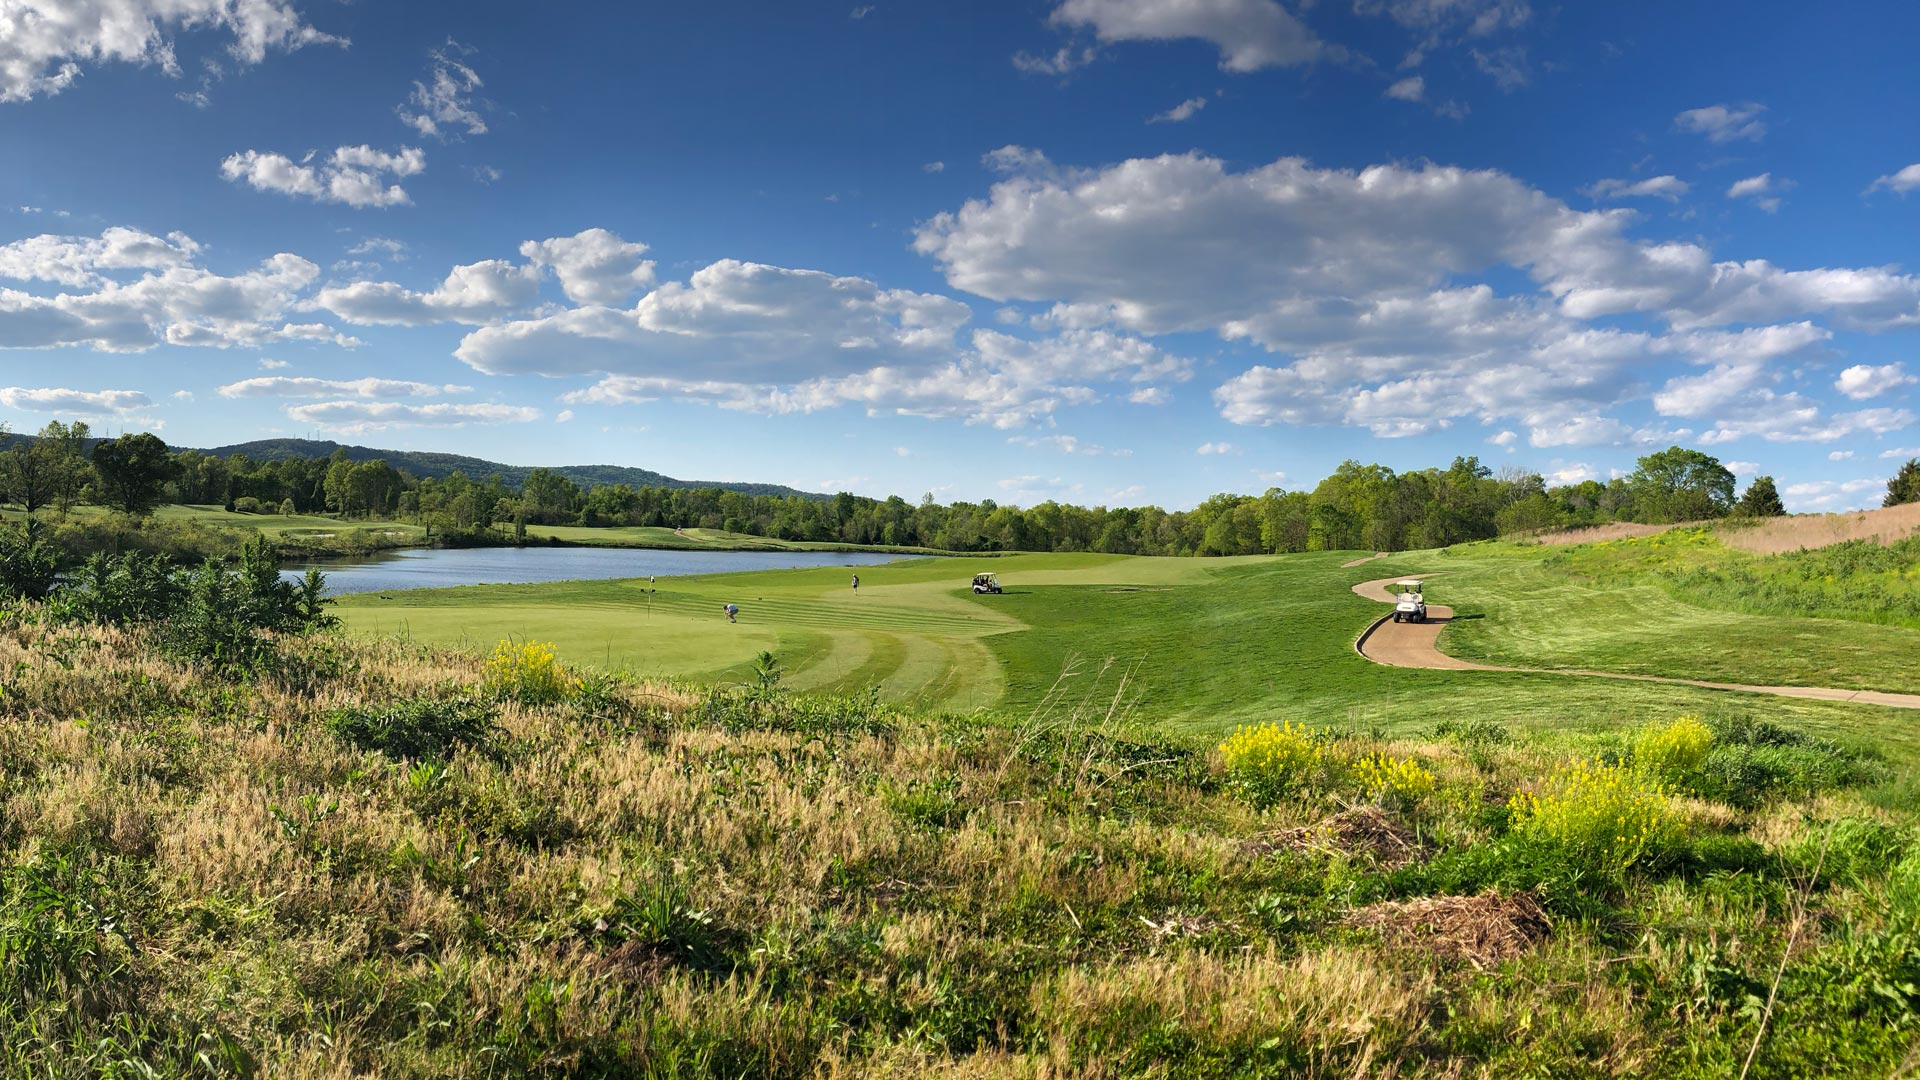 Bull Run Golf Club | Public Course | Haymarket, VA - Home